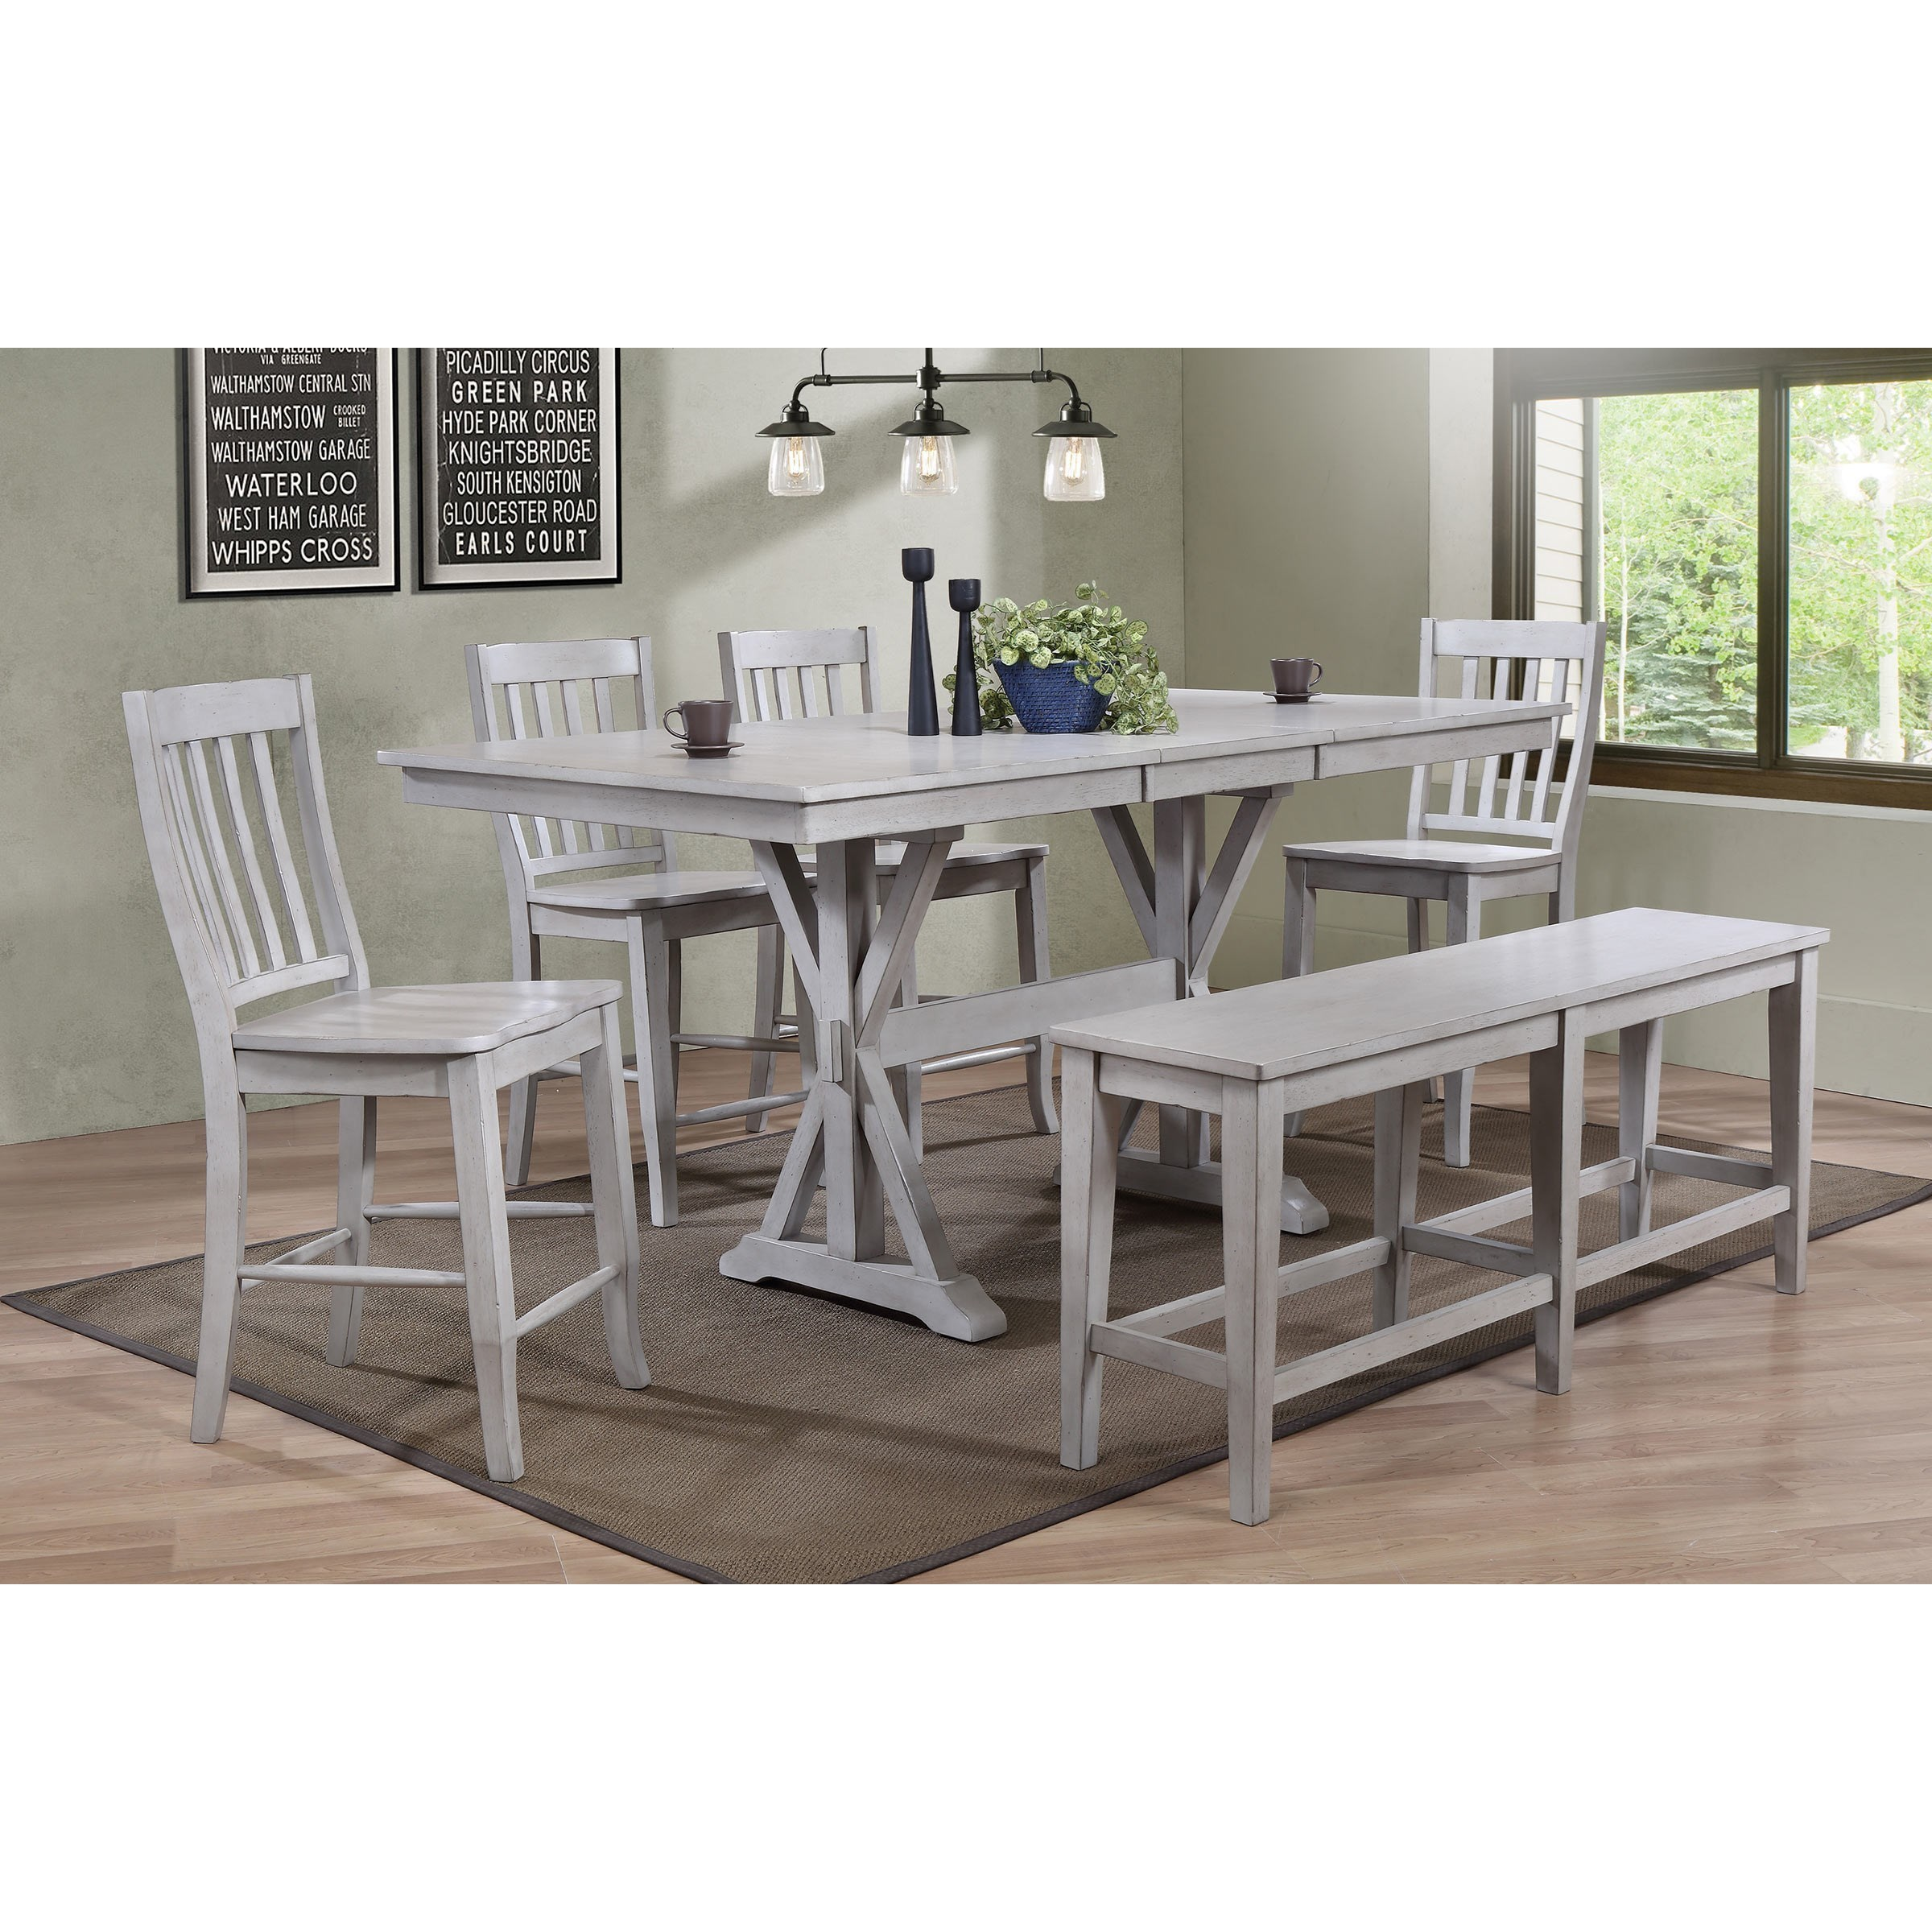 Winners Only Carmel Dct33879g 4x5224g 5624g 6 Piece Dining Set With Bench O Dunk O Bright Furniture Table Chair Set With Bench